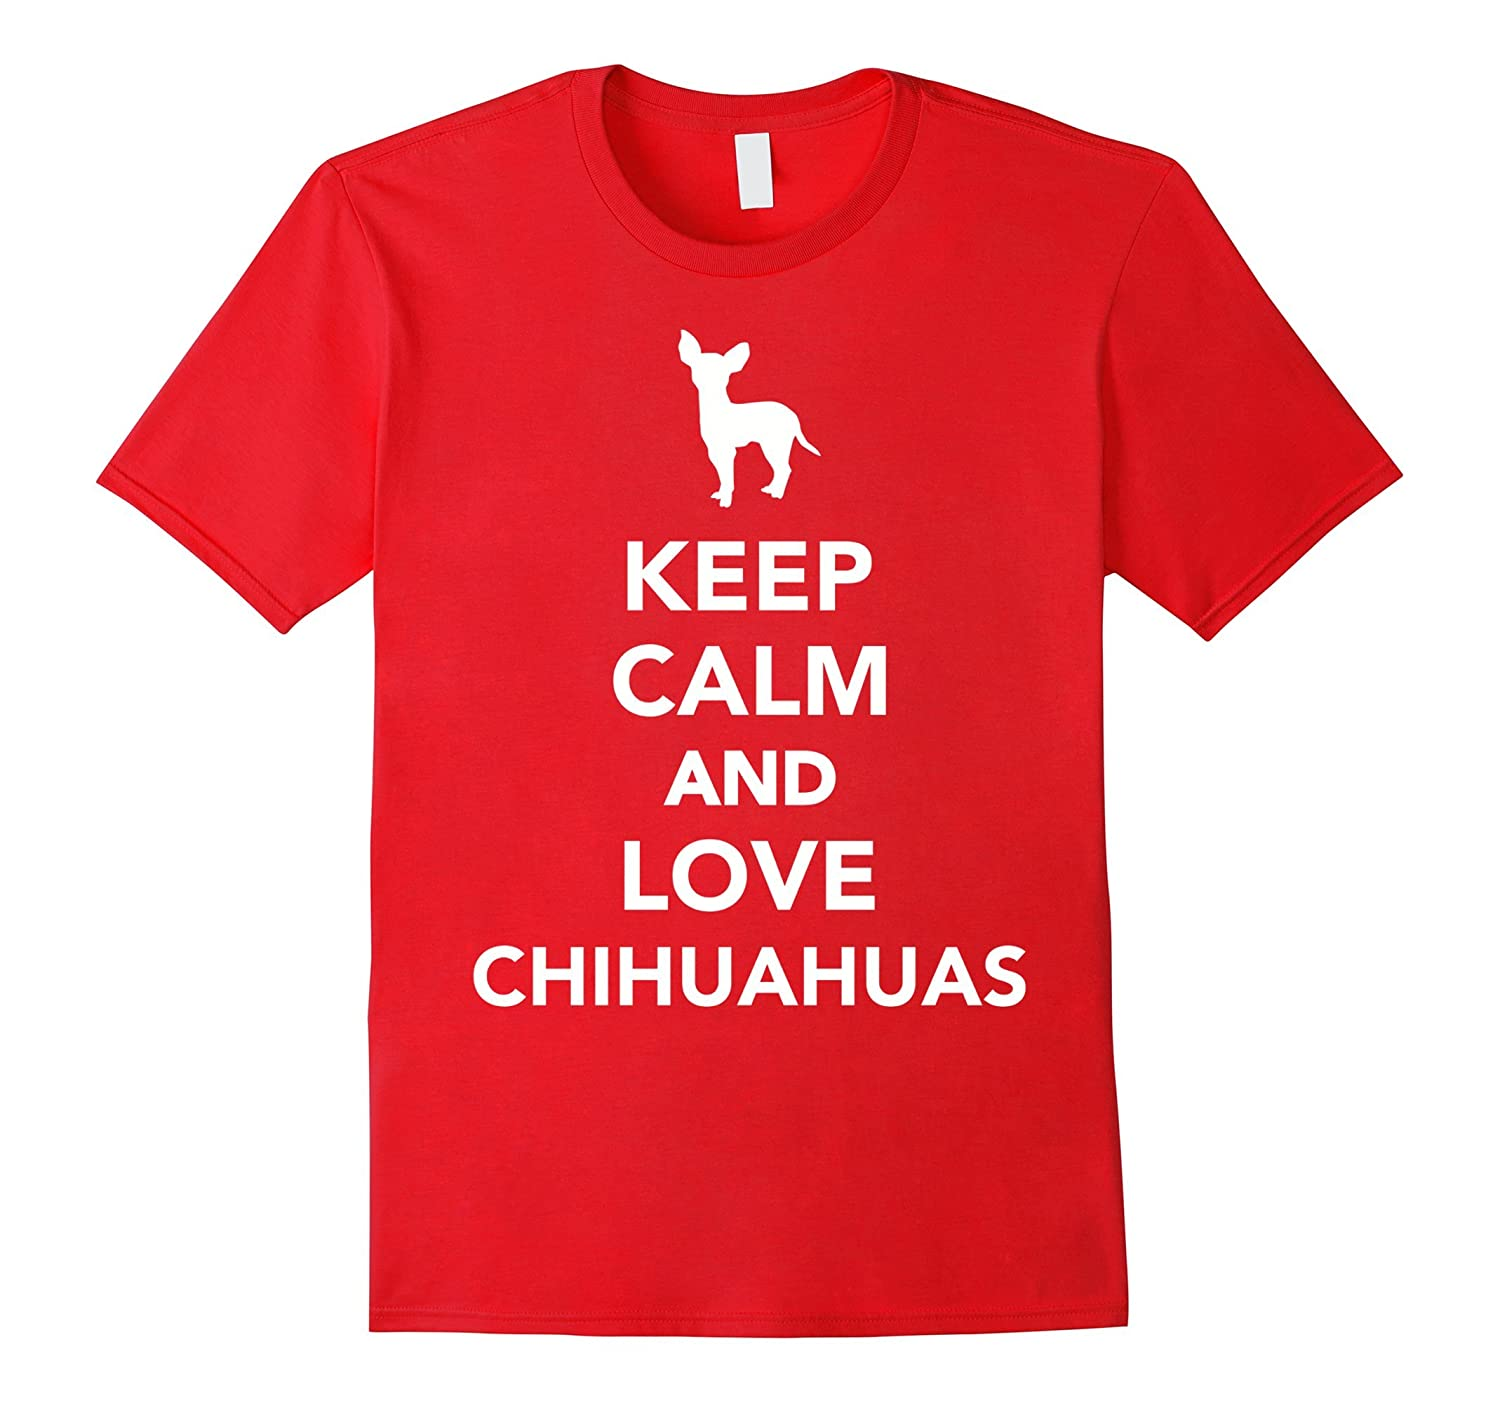 Keep Calm And Love Chihuahuas T Shirt 4LVS